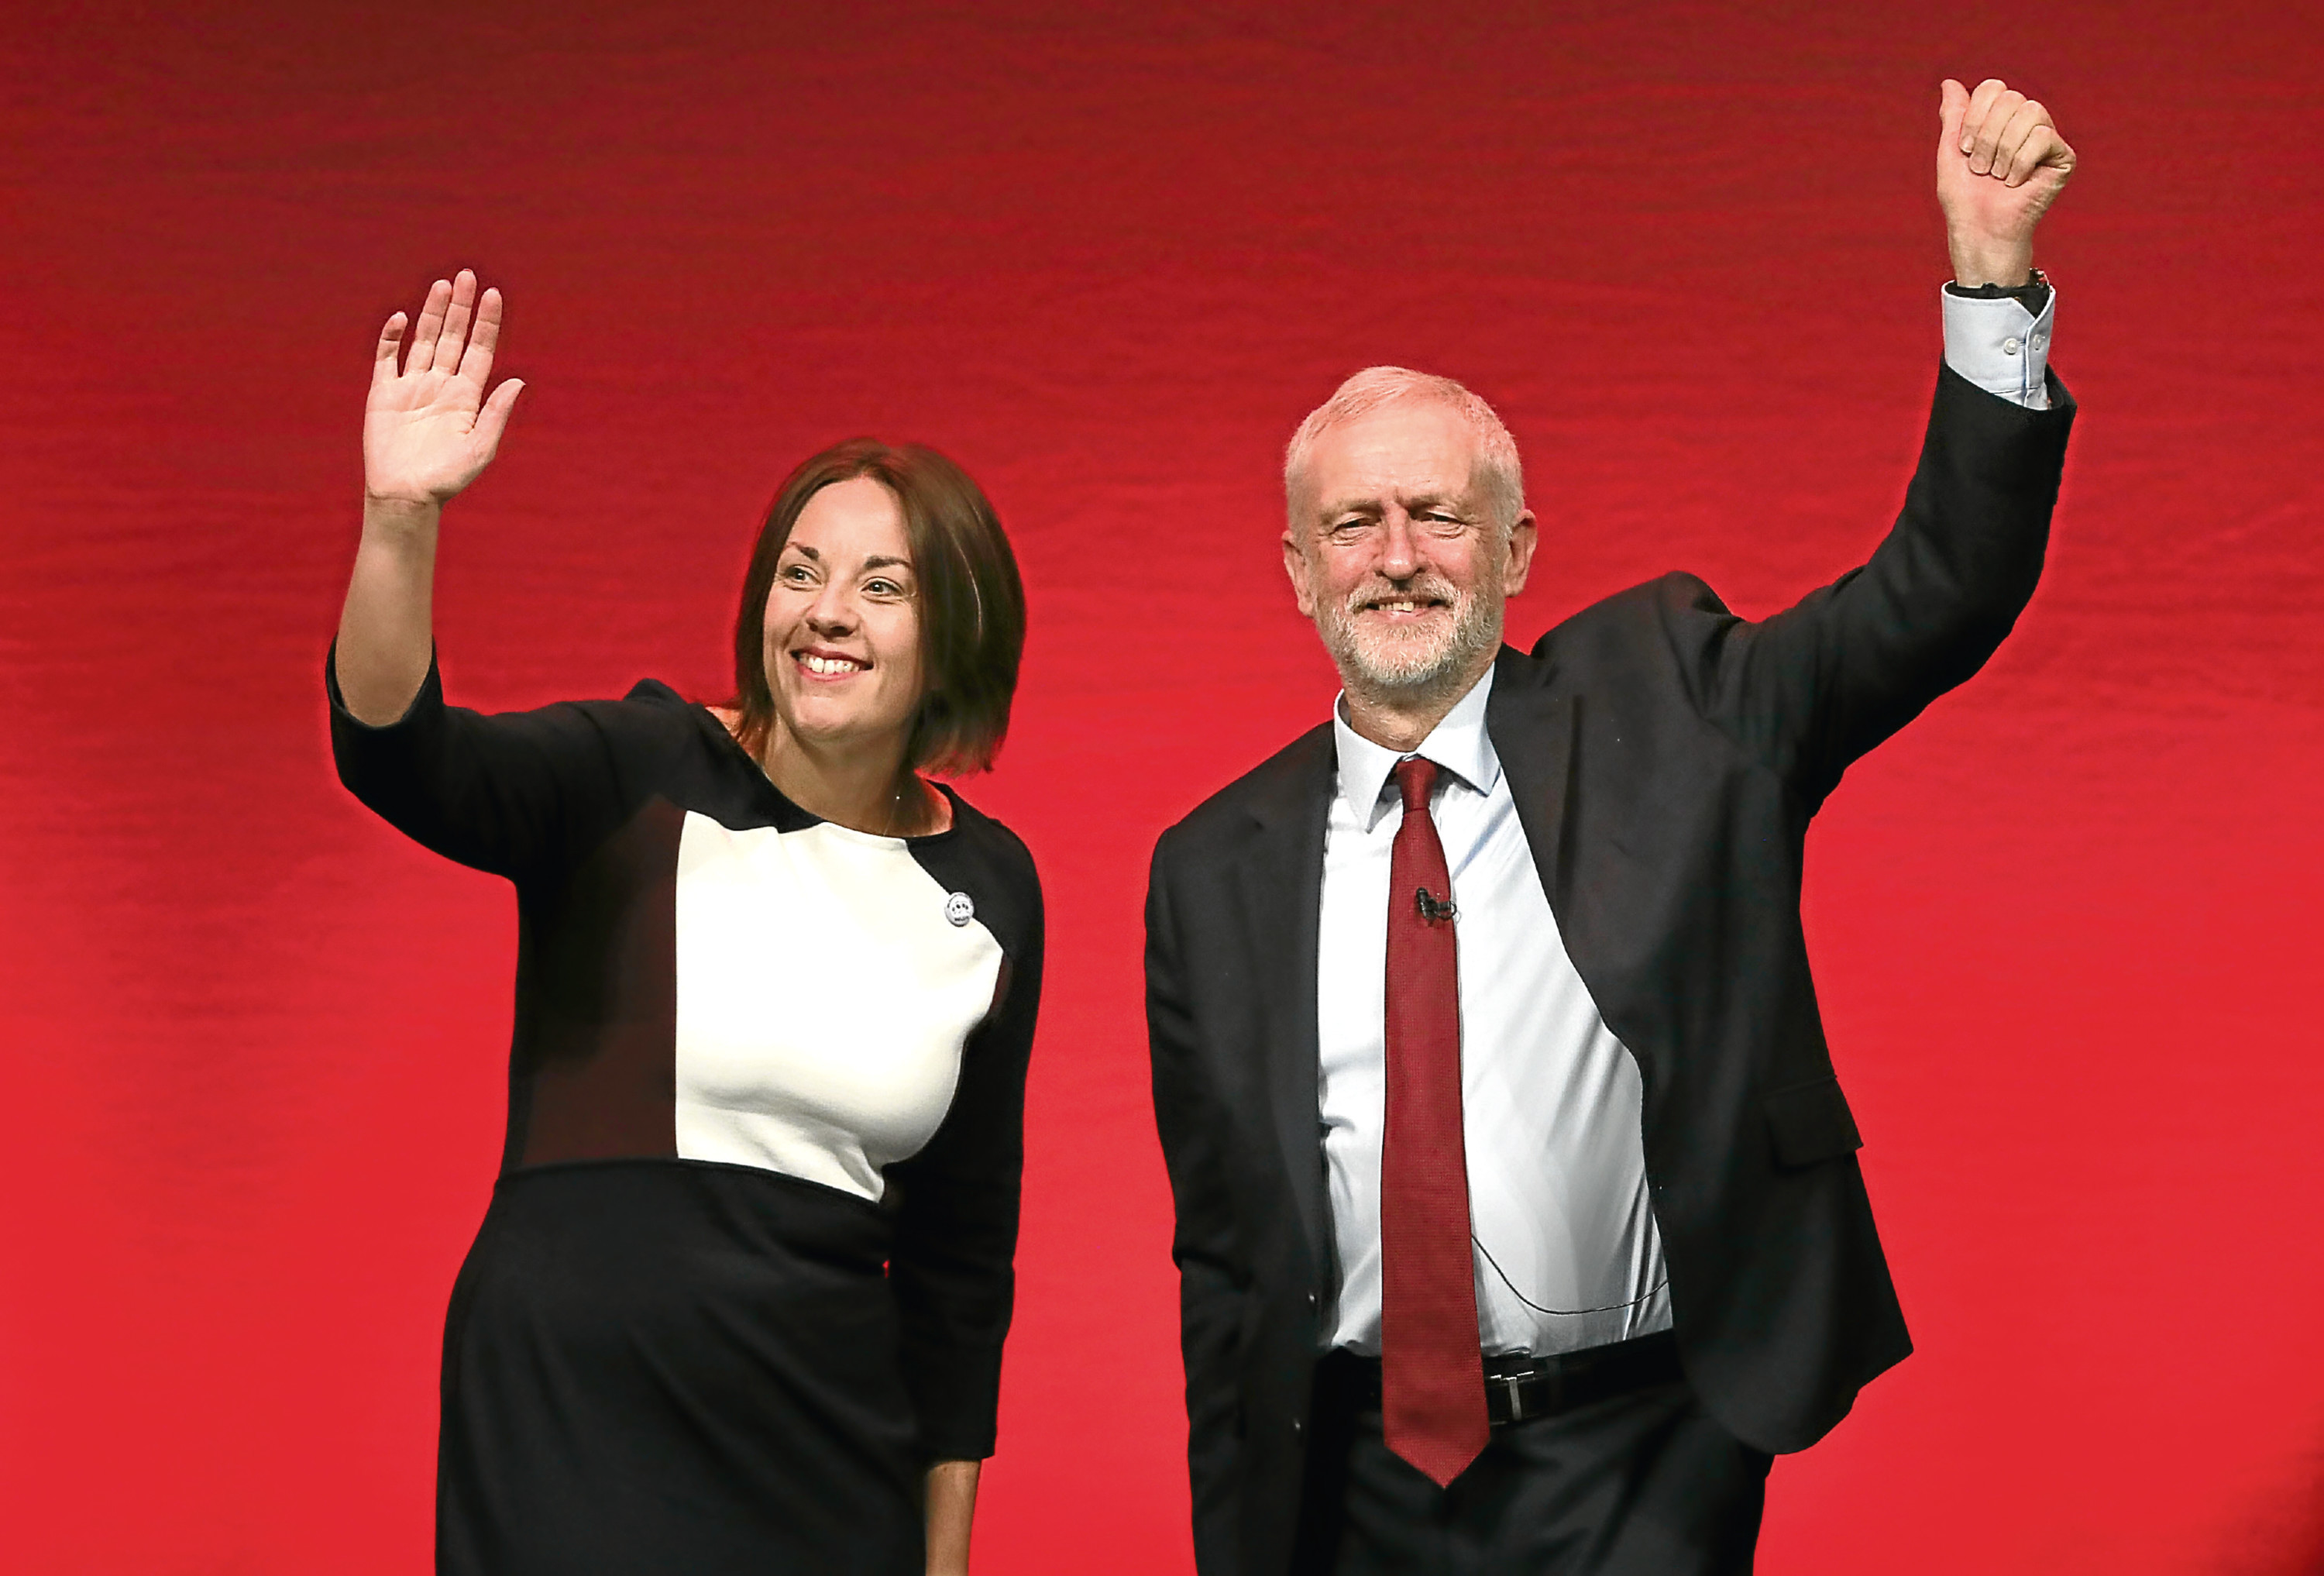 Former Scottish Labour leader Kezia Dugdale and Labour leader Jeremy Corbyn.